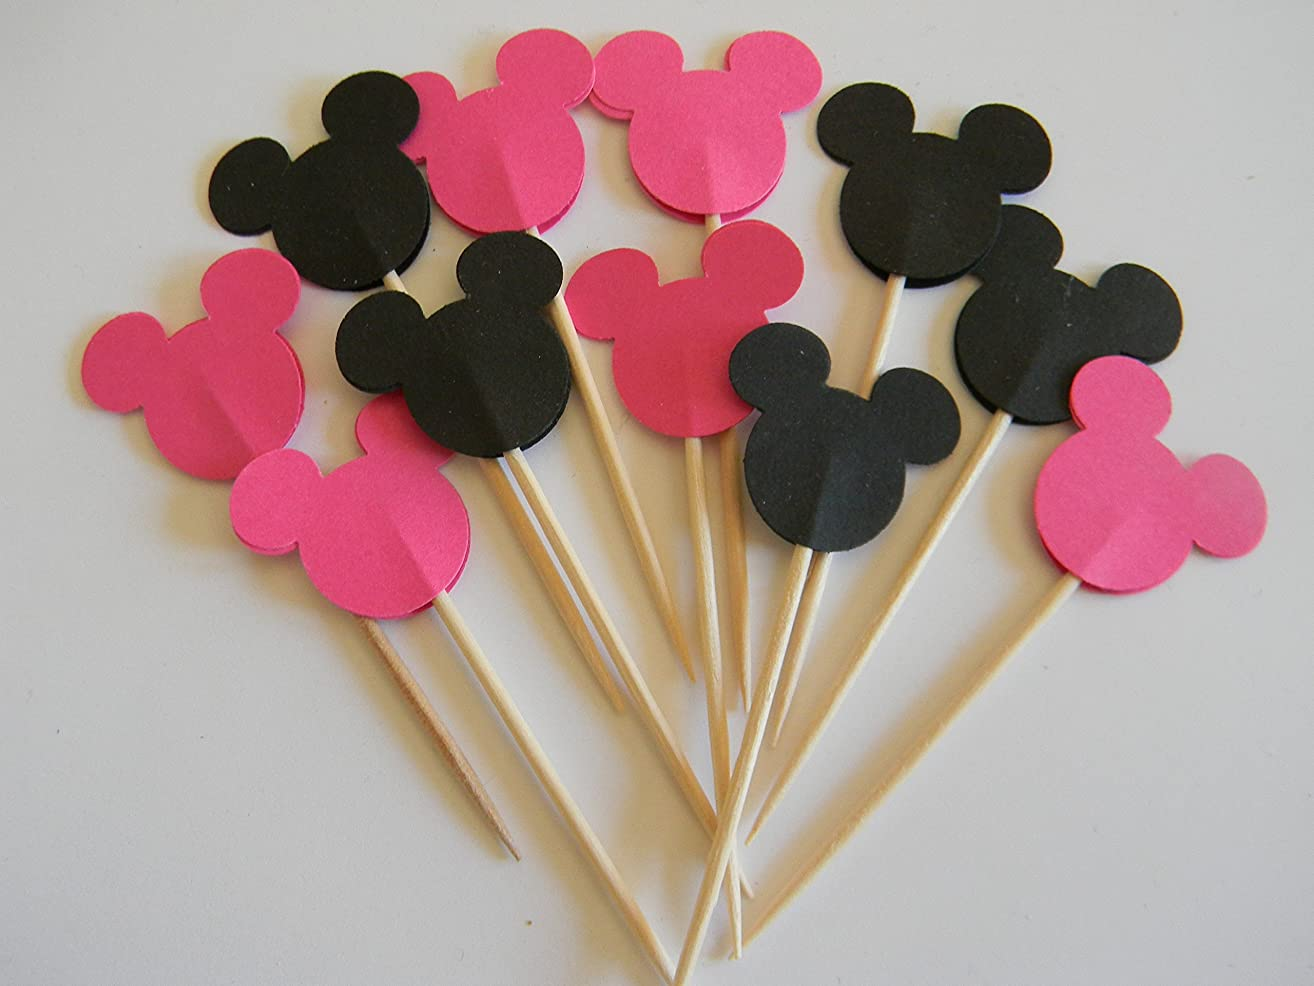 24 Mickey Mouse Mixed Hot Pink and Black inspired cupcake toppers food picks birthday party décor shower supplies